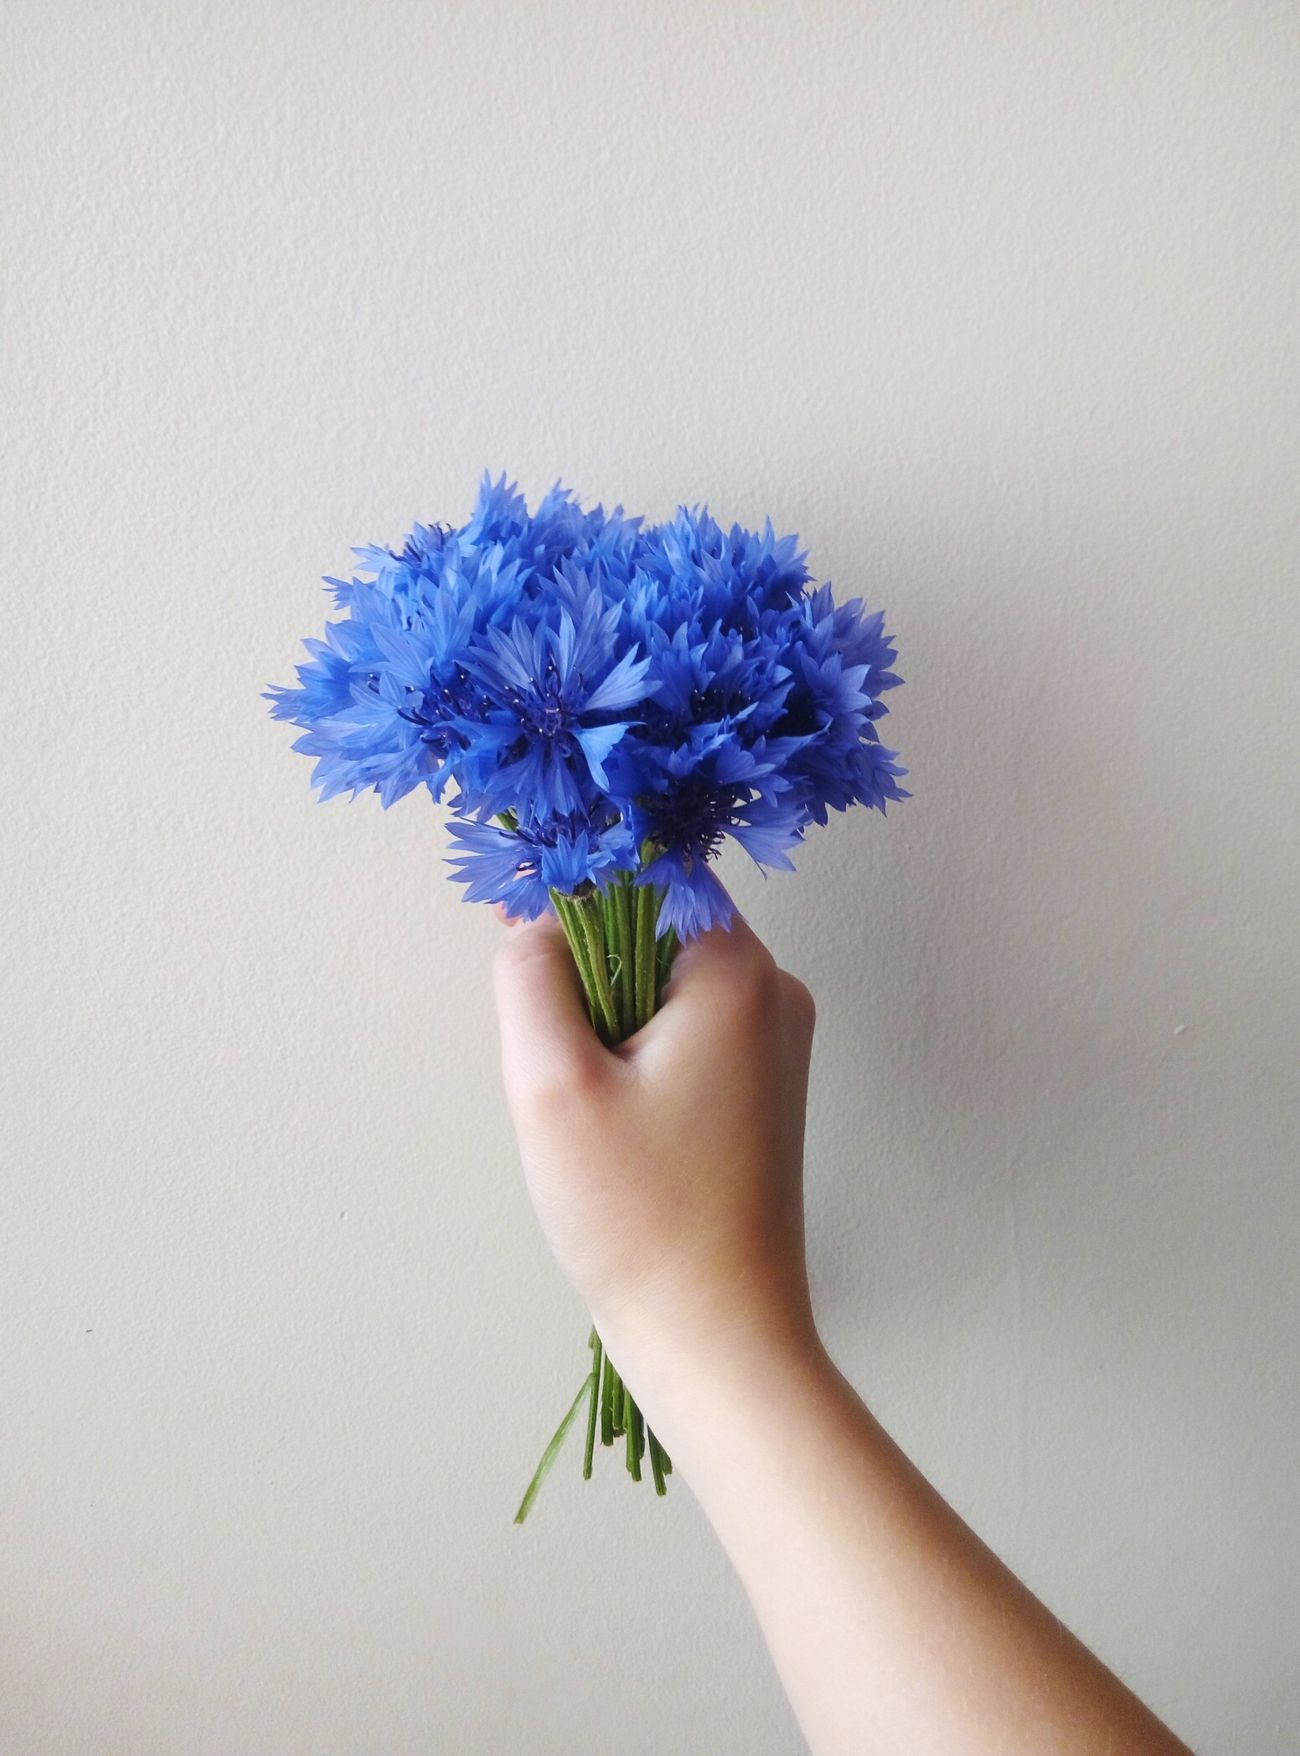 The Essence Of Summer Nature's Diversities Summer Mood Summer Coming Blue Flowers White Blue&white White Background Hand Holding Bouquet Bouquet Of Flowers Cornflowers Flowerporn